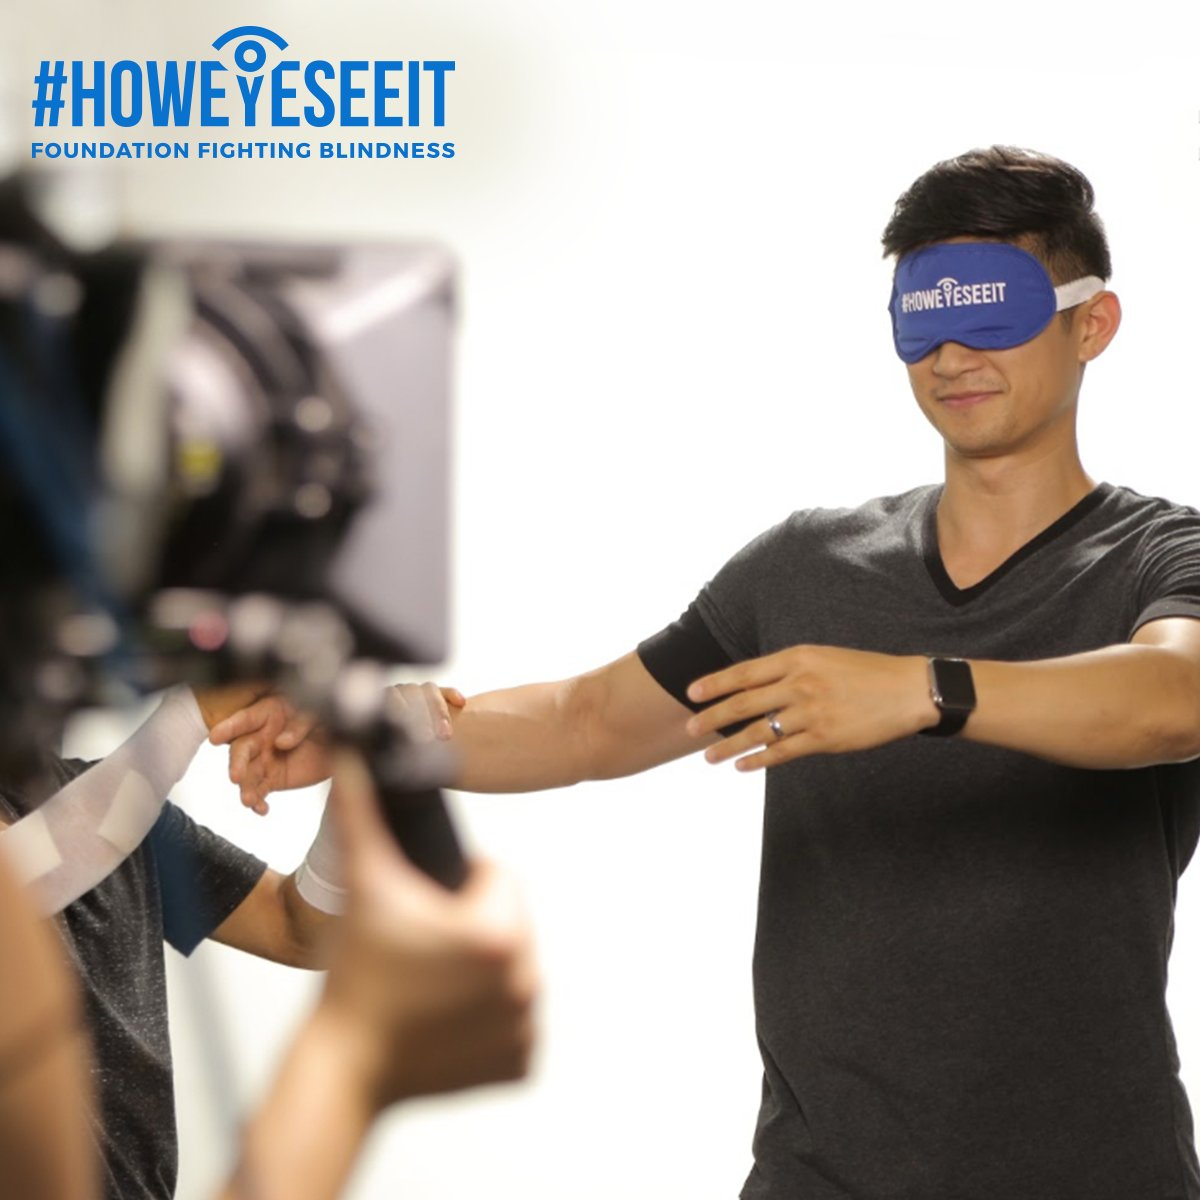 Our friend @HarryShumJr accepted the #HowEyeSeeIt challenge in support of FFB and danced without vision! https://t.co/szK684JxTd